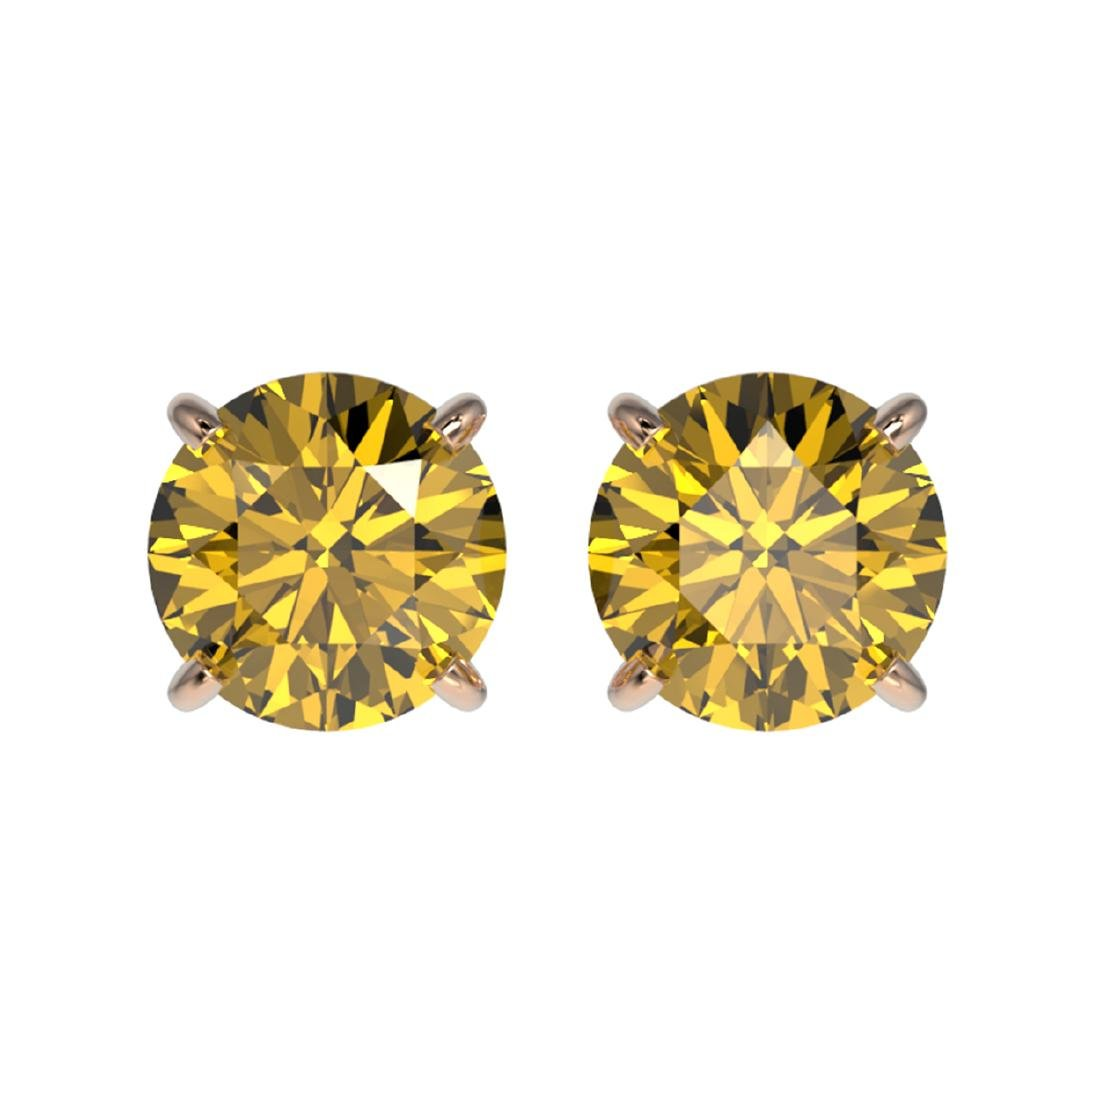 1.54 ctw Intense Yellow Diamond Stud Earrings 10K Rose